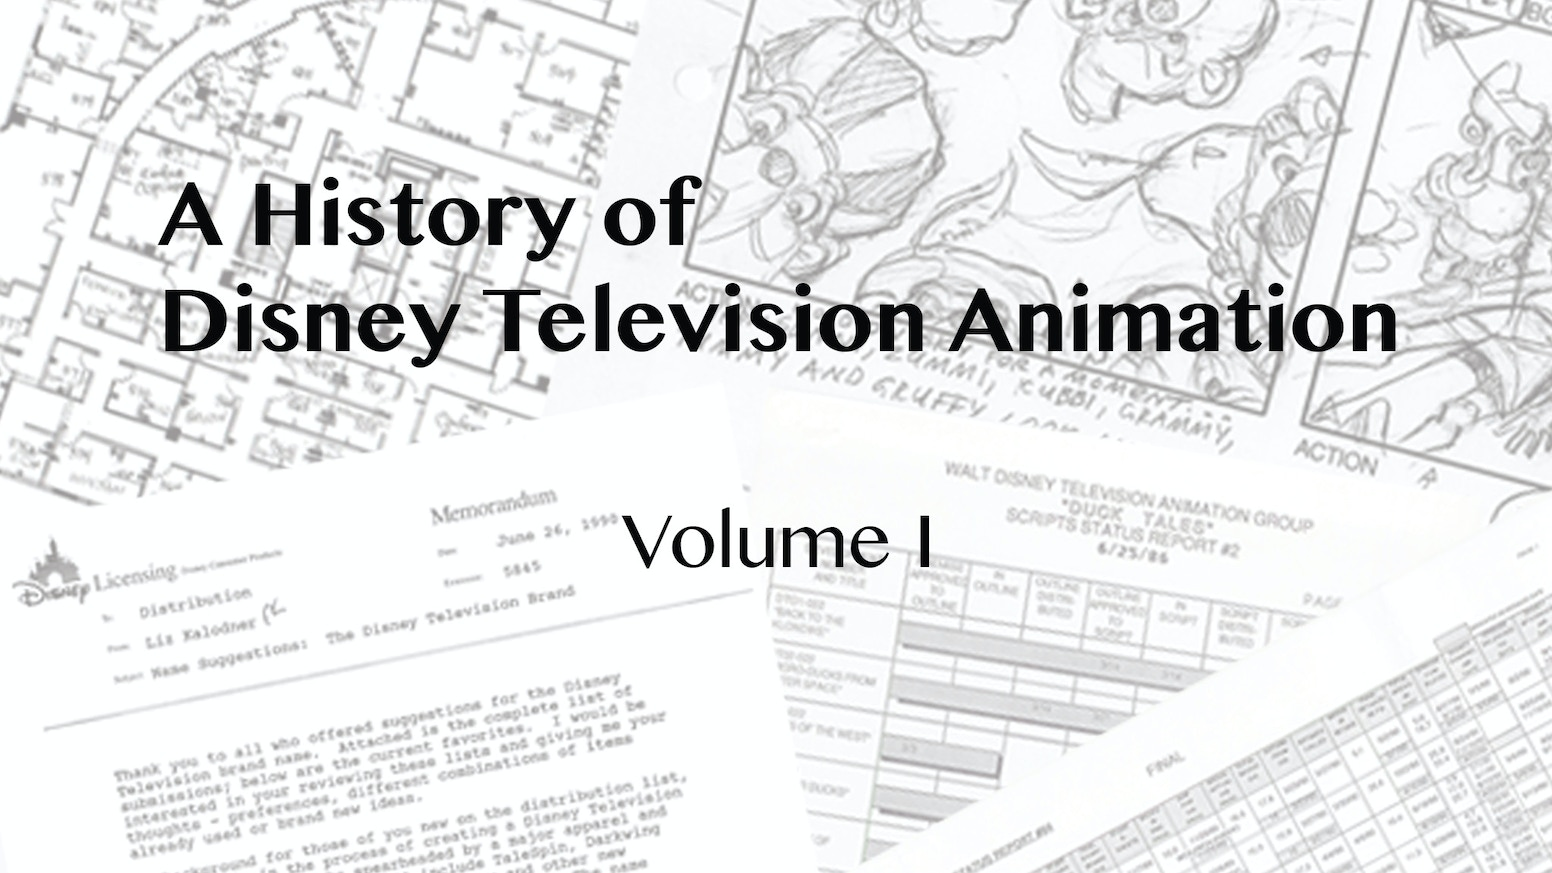 The History of Disney Television Animation, a rich history with the first volume focused on the first decade.